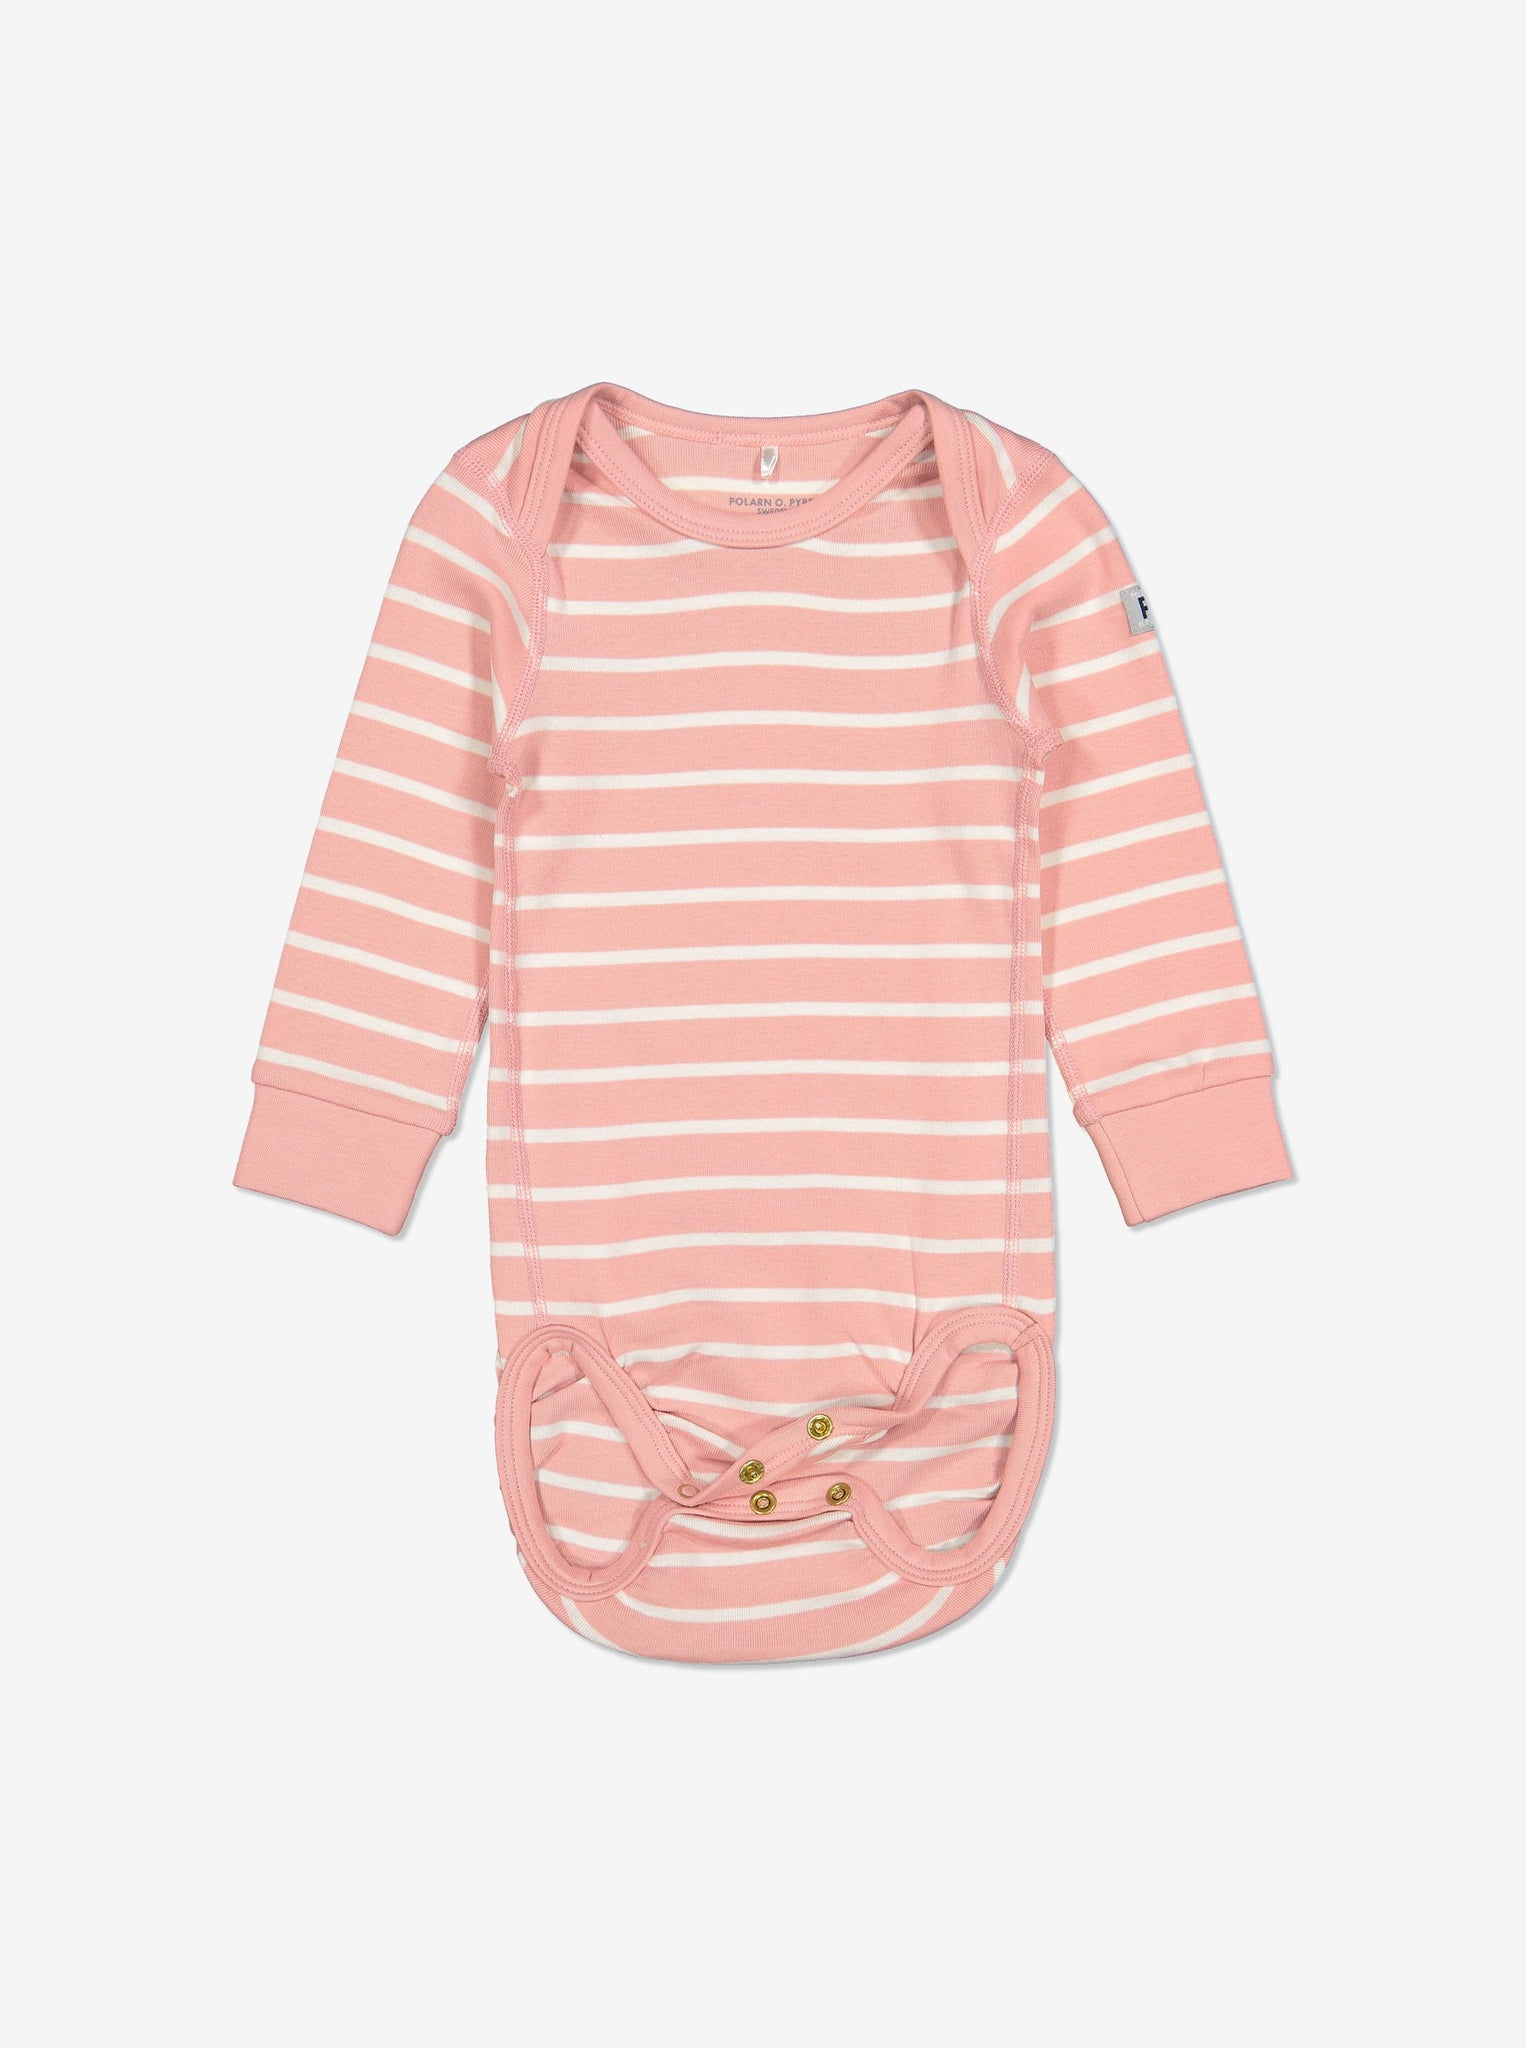 Striped Baby Bodysuit-Girl-Preterm-2y-Pink